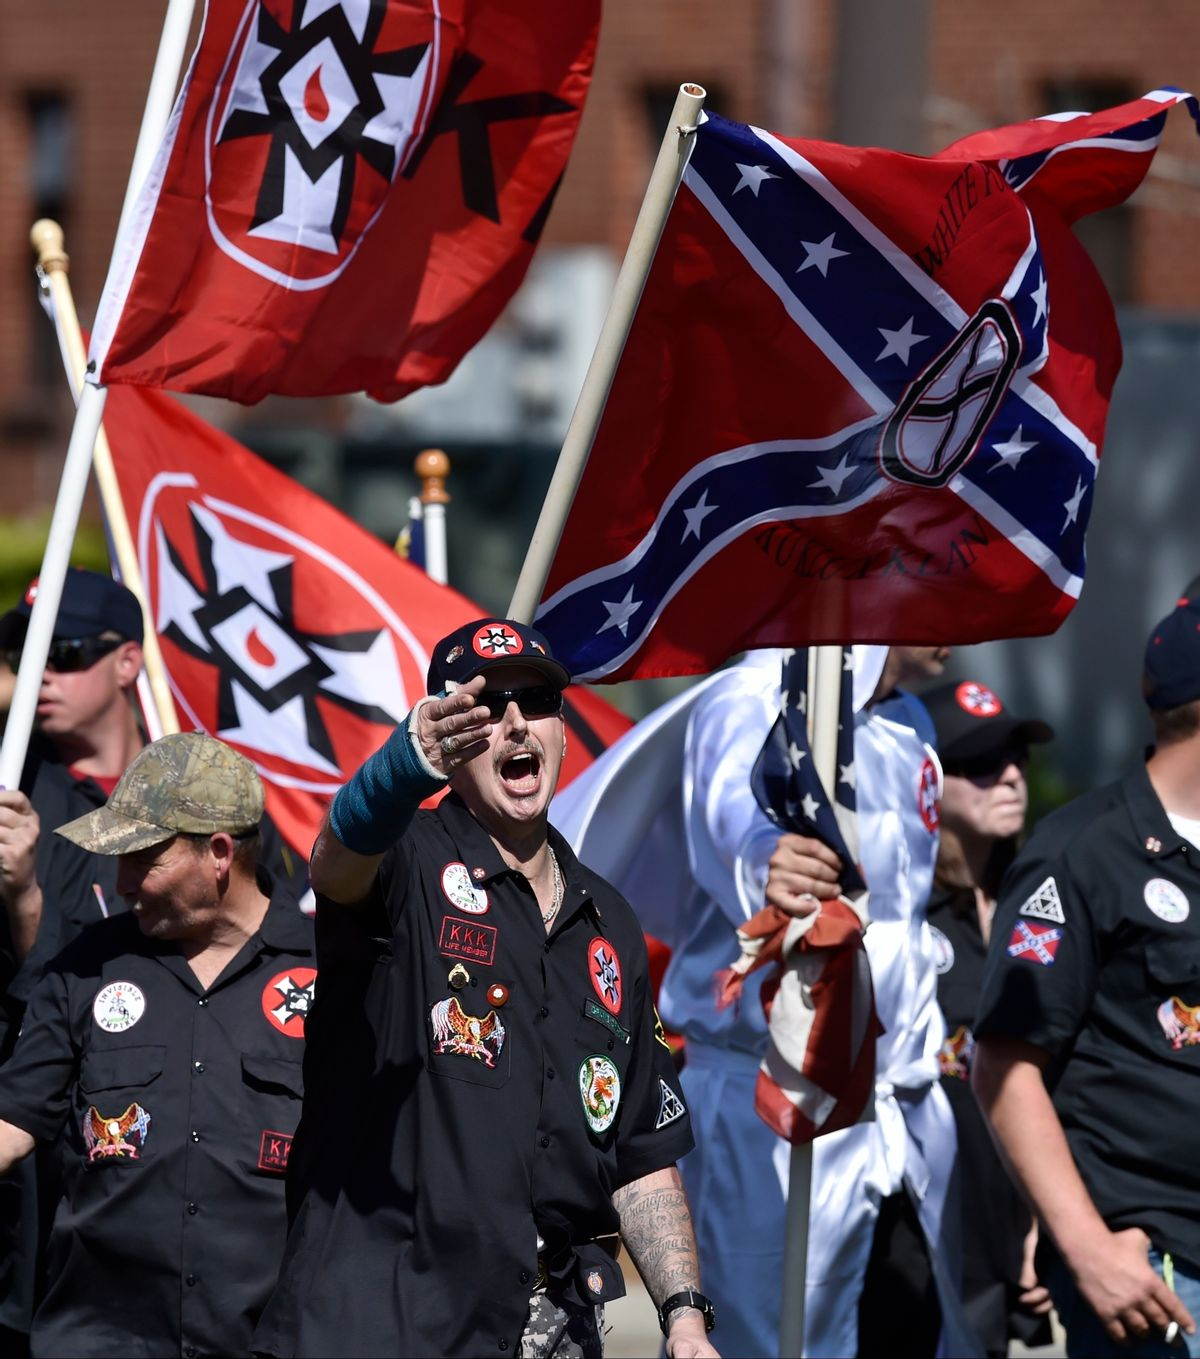 """In this Saturday, April 23, 2016 photo, Loyal White Knights Grand Dragon Will Quigg of Anaheim, Calif., center, shouts to protestors during a """"White Pride,"""" rally, in Rome, Ga.  (AP)"""